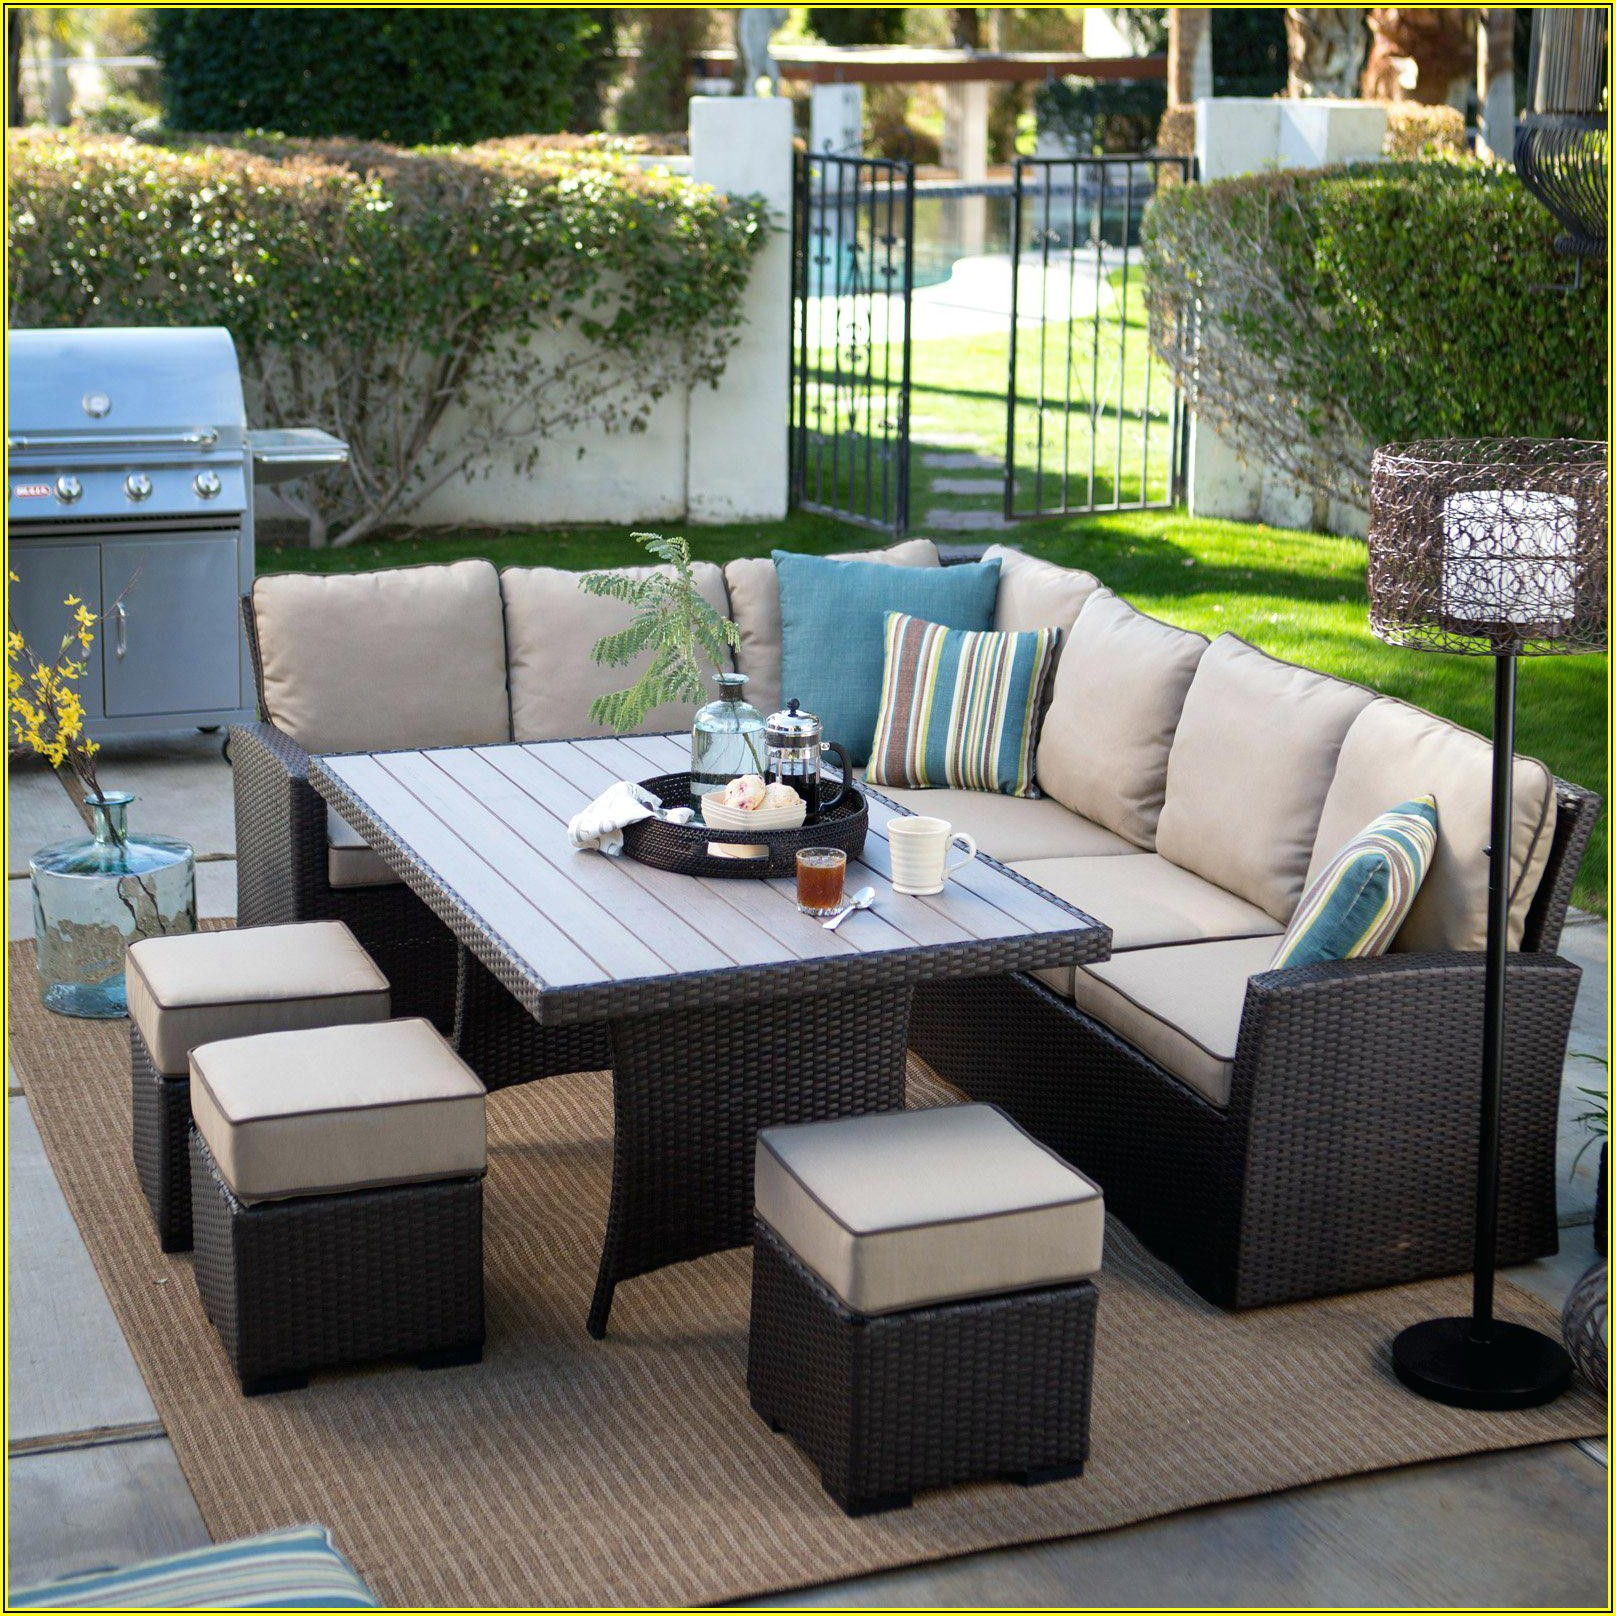 4 Seasons Patio Furniture